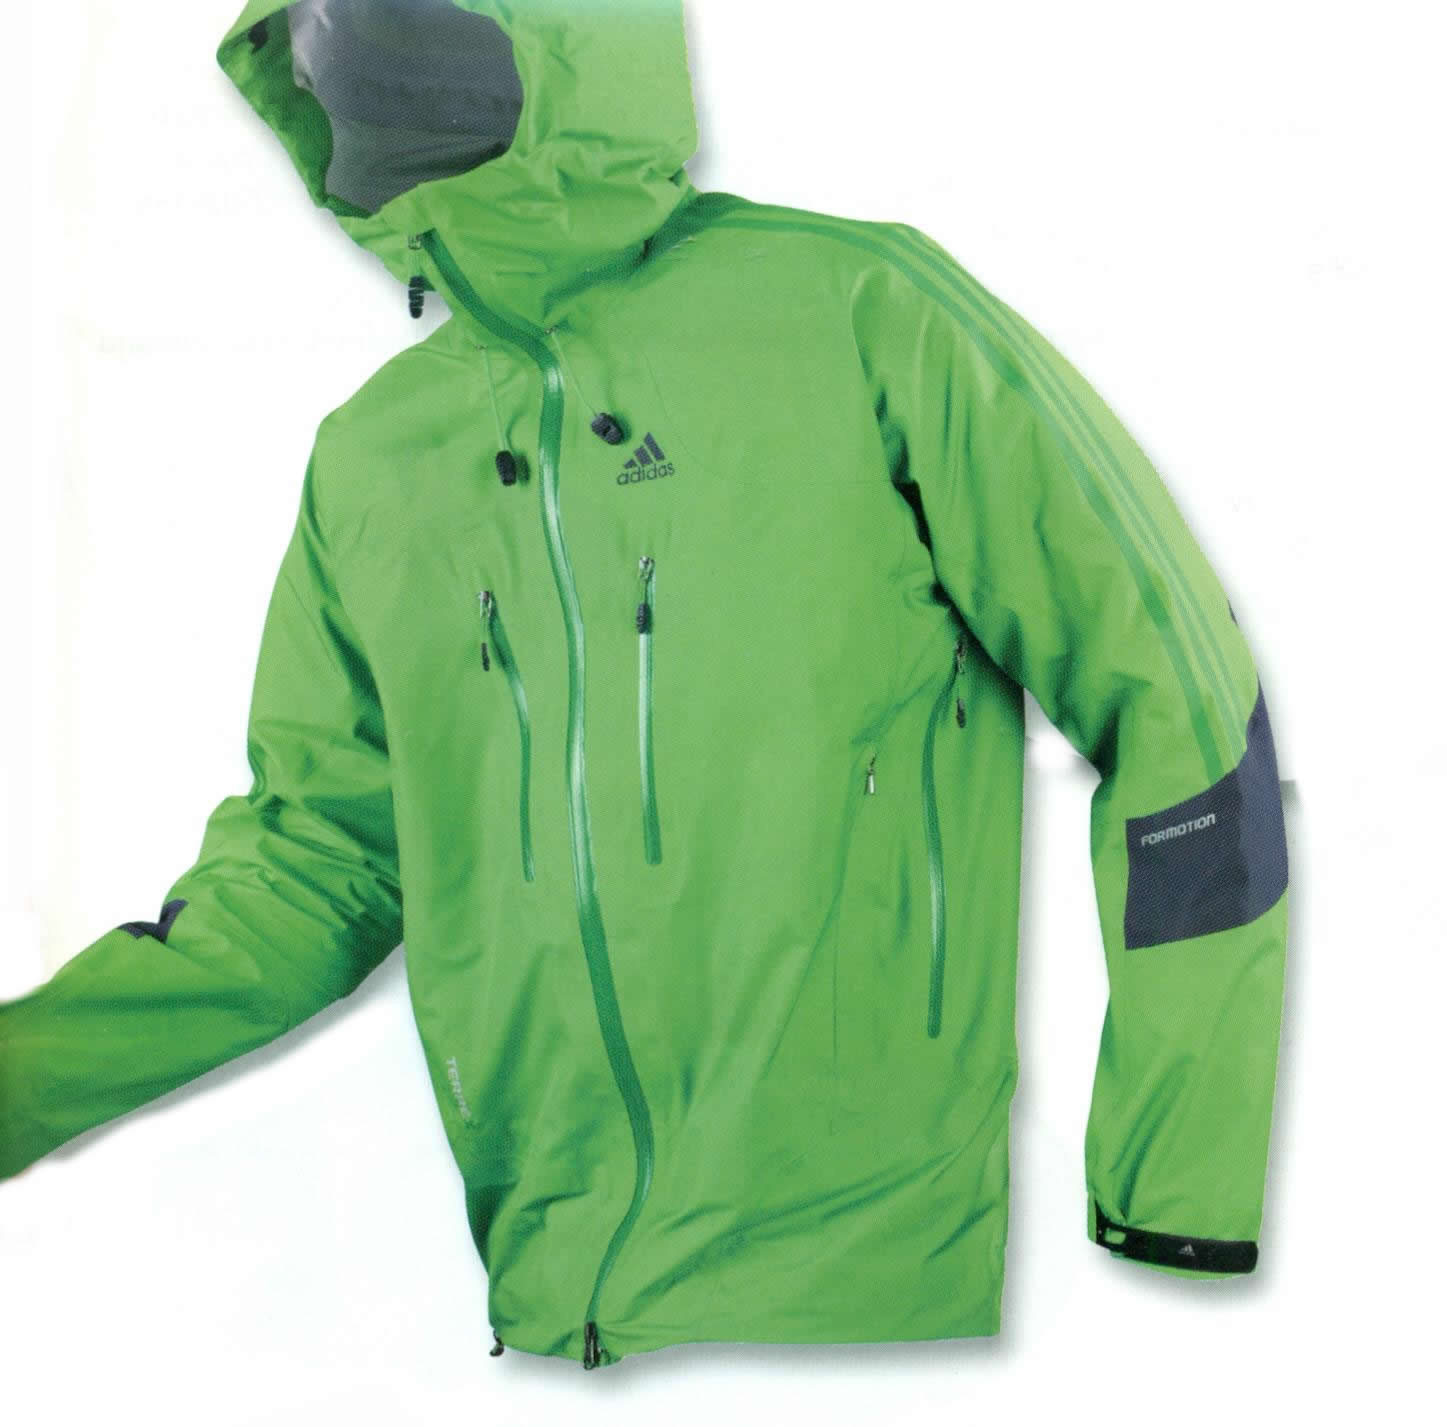 Adidas: Terrex Feather Jacket